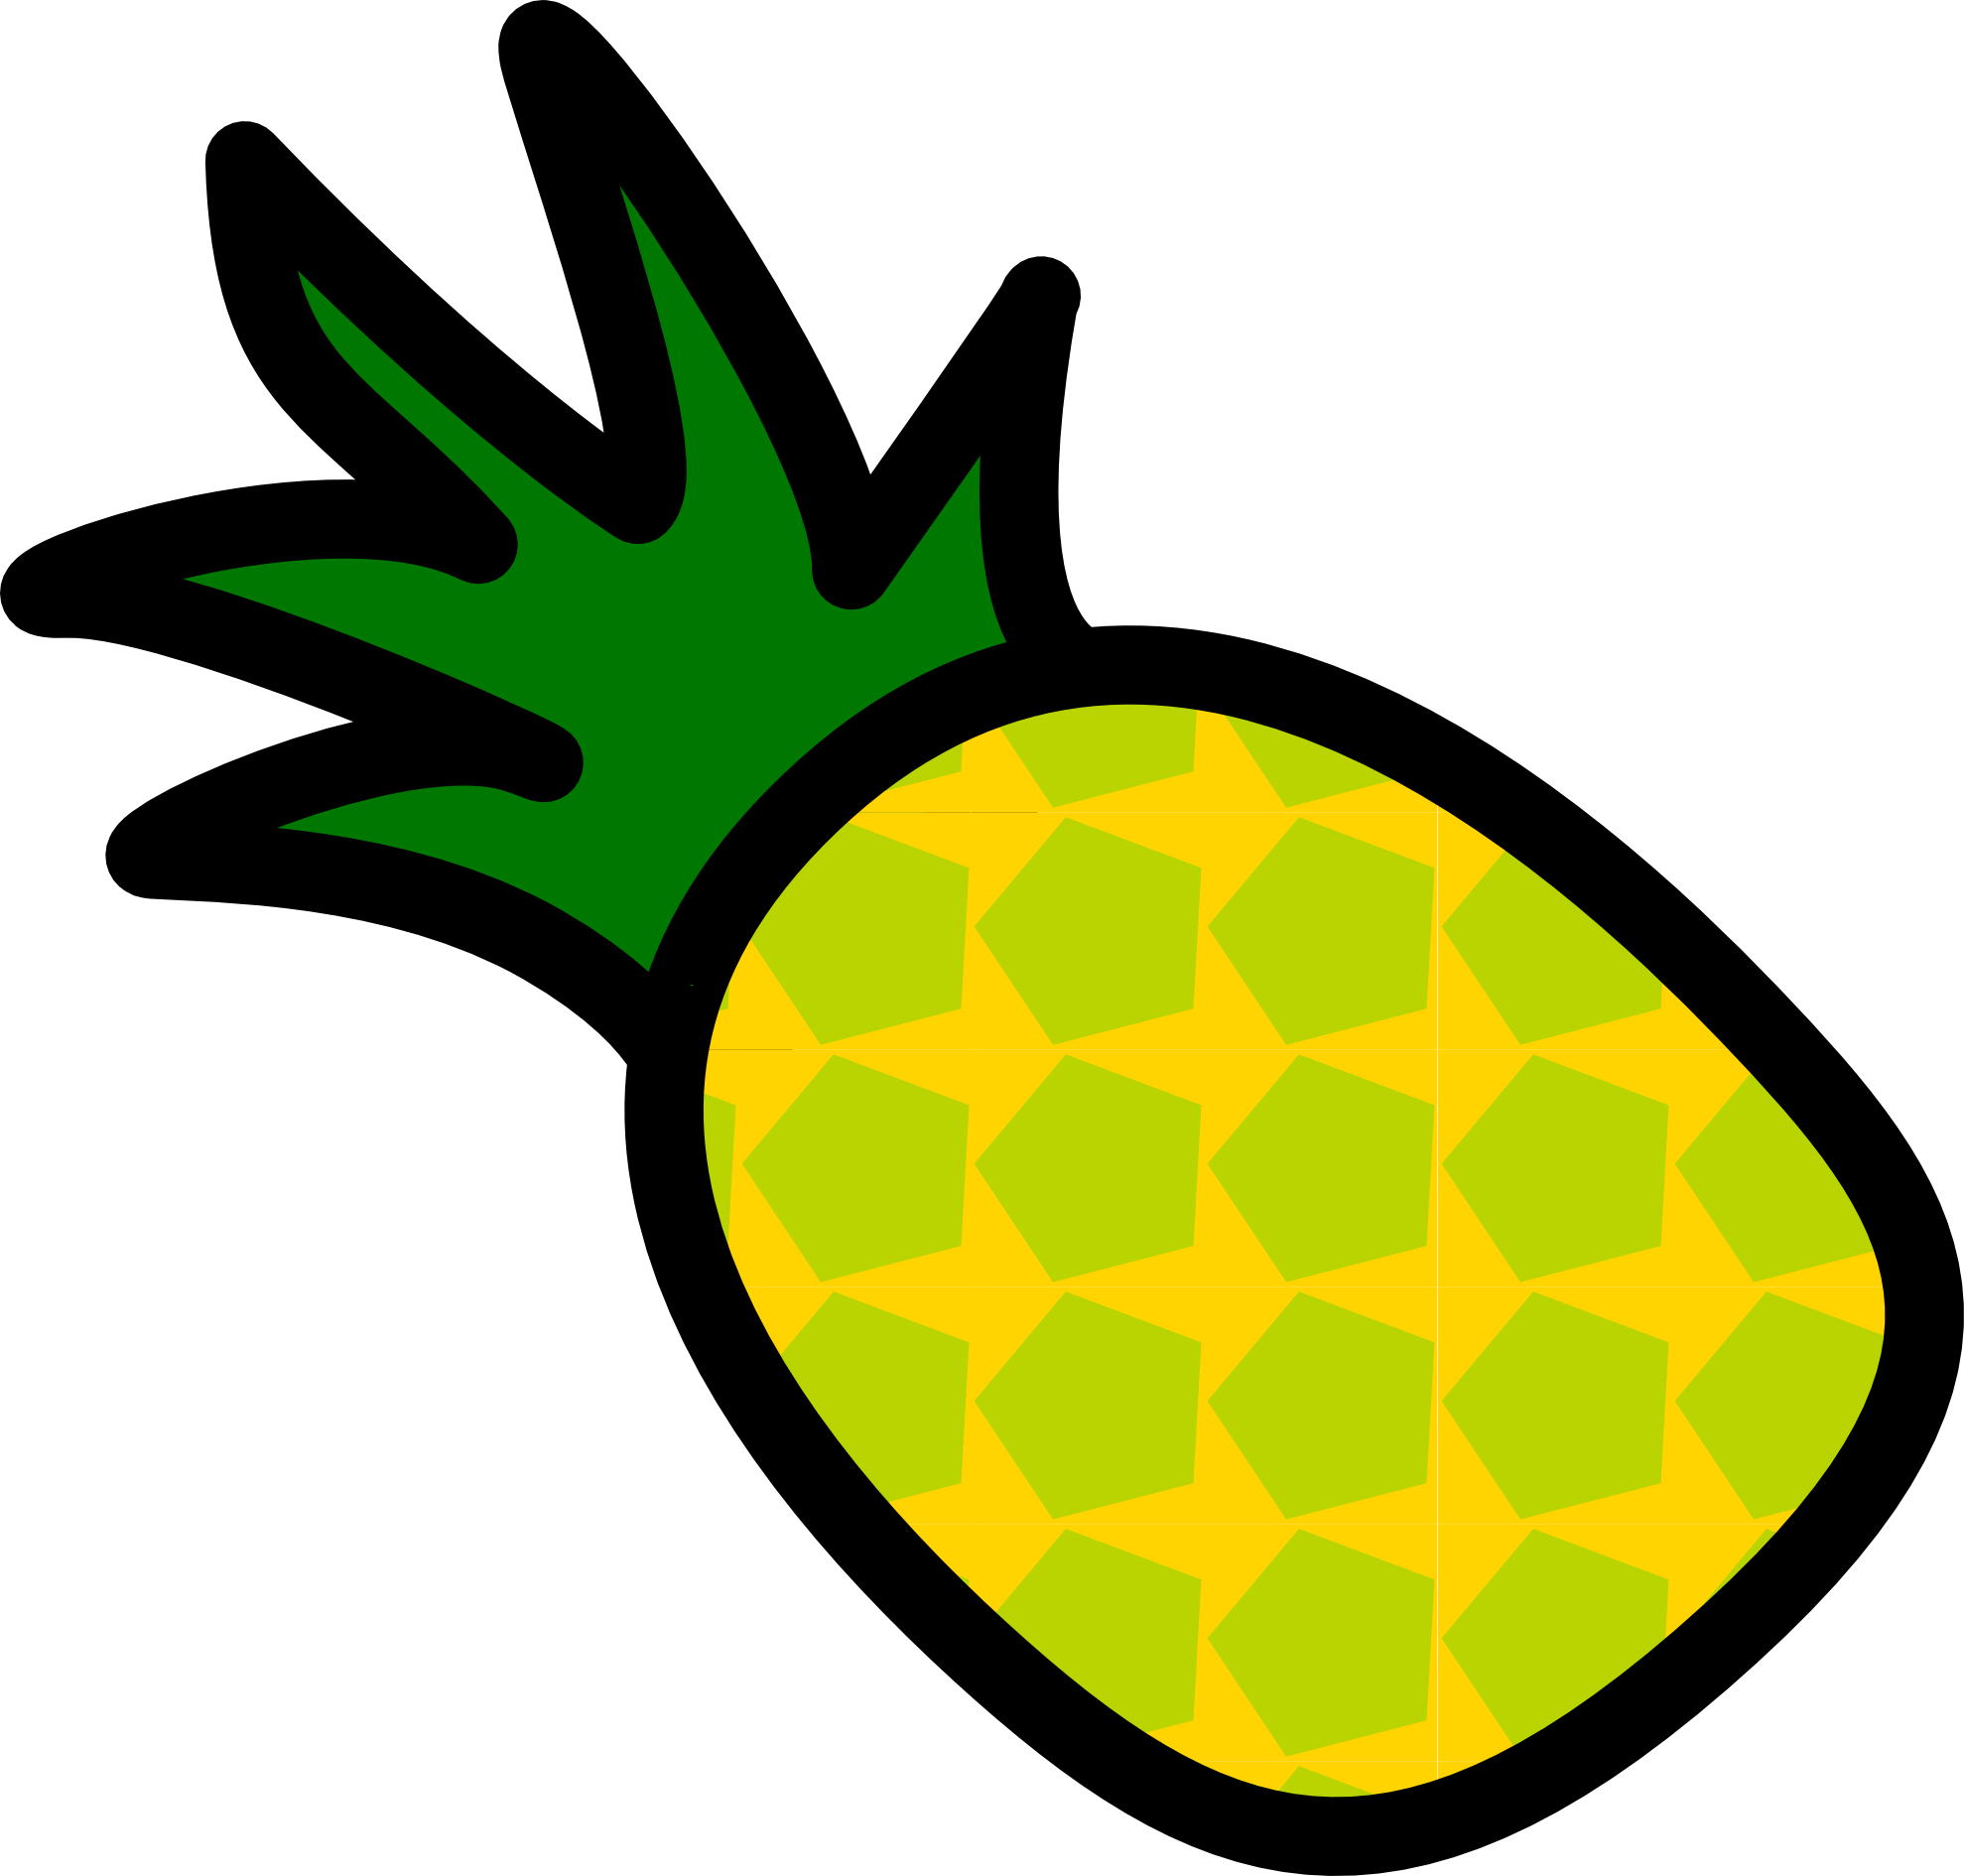 Pineapple clipart free images 2